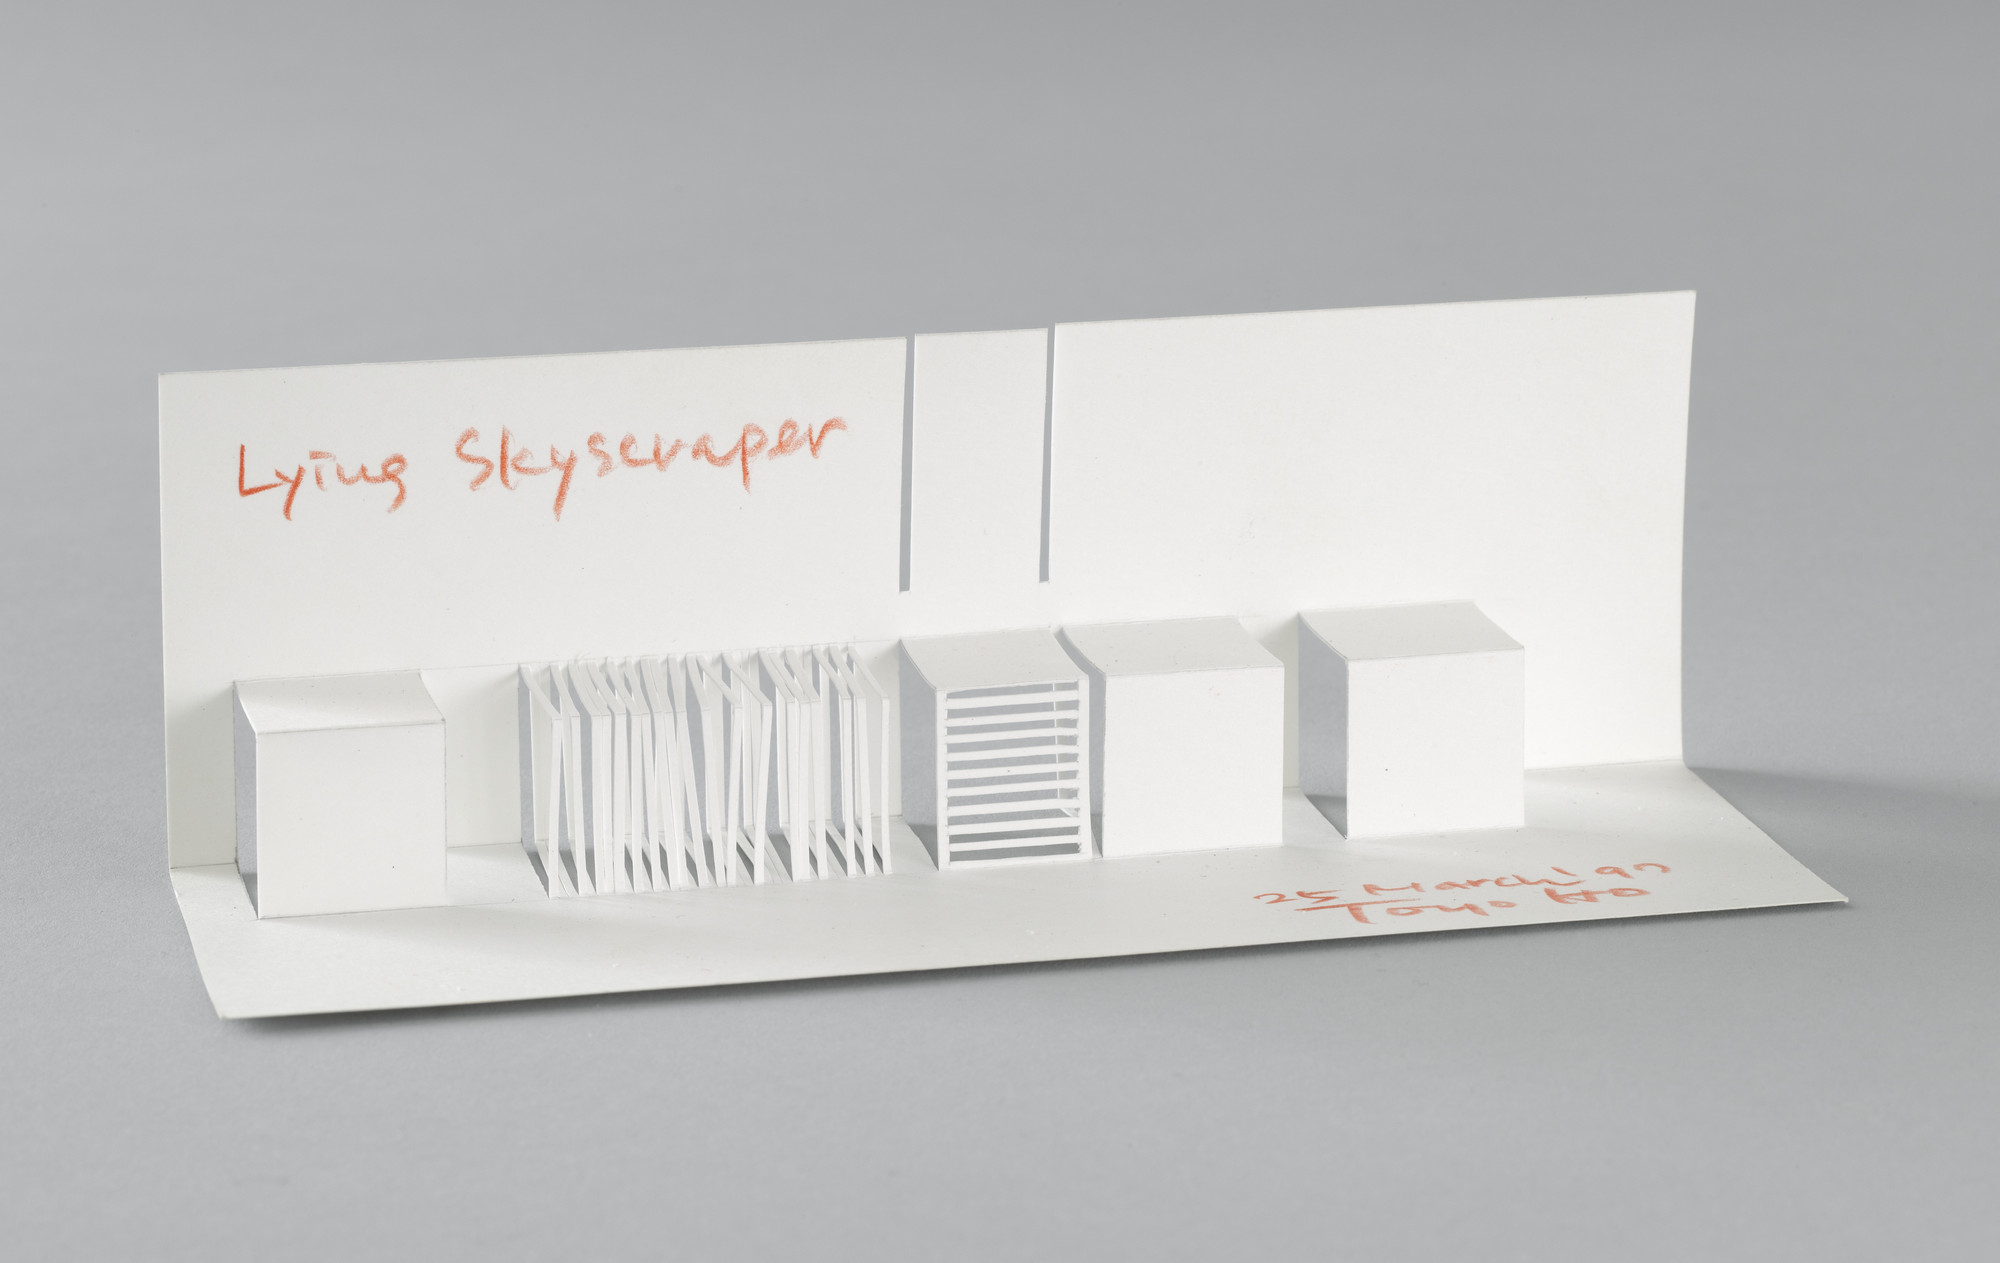 Toyo Ito  Charrette Submission for The Museum of Modern Art